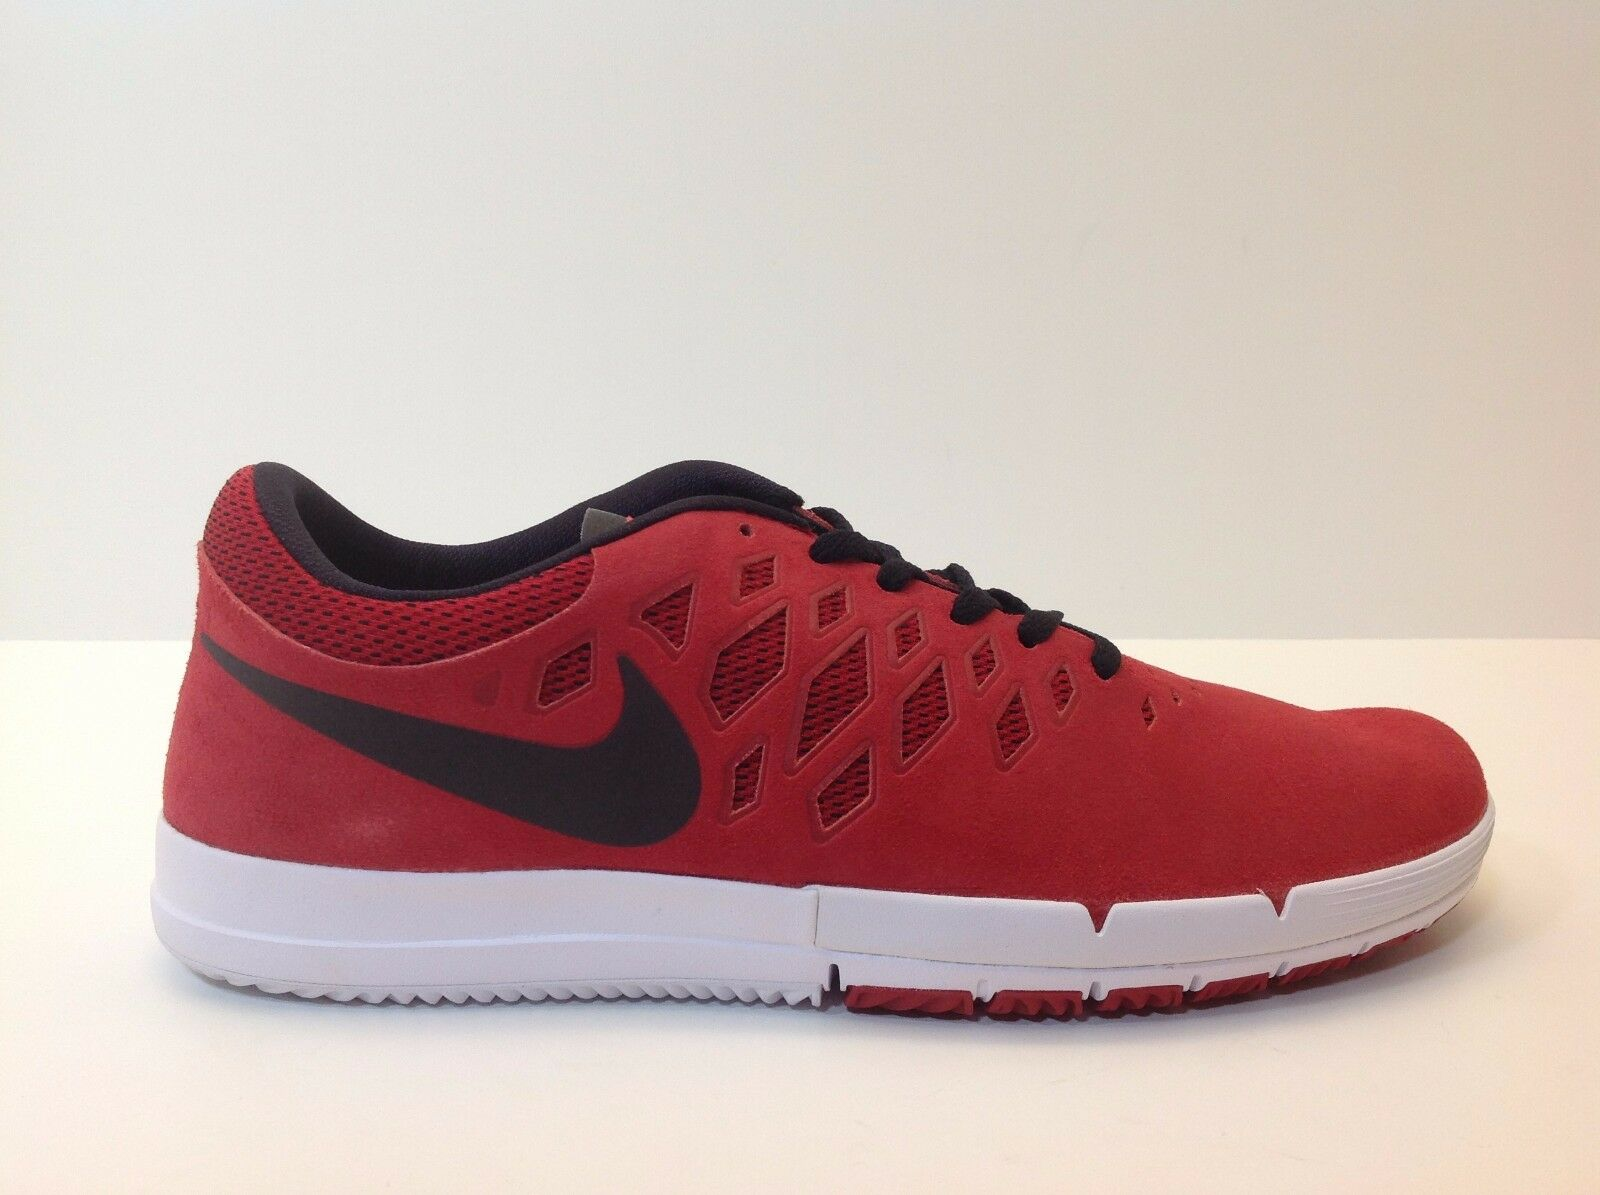 hot sale online 716a2 26bb8 Nike Free SB Red Black Men s Size 9-11.5 New in Box Box Box 704936 606  d2dbe8